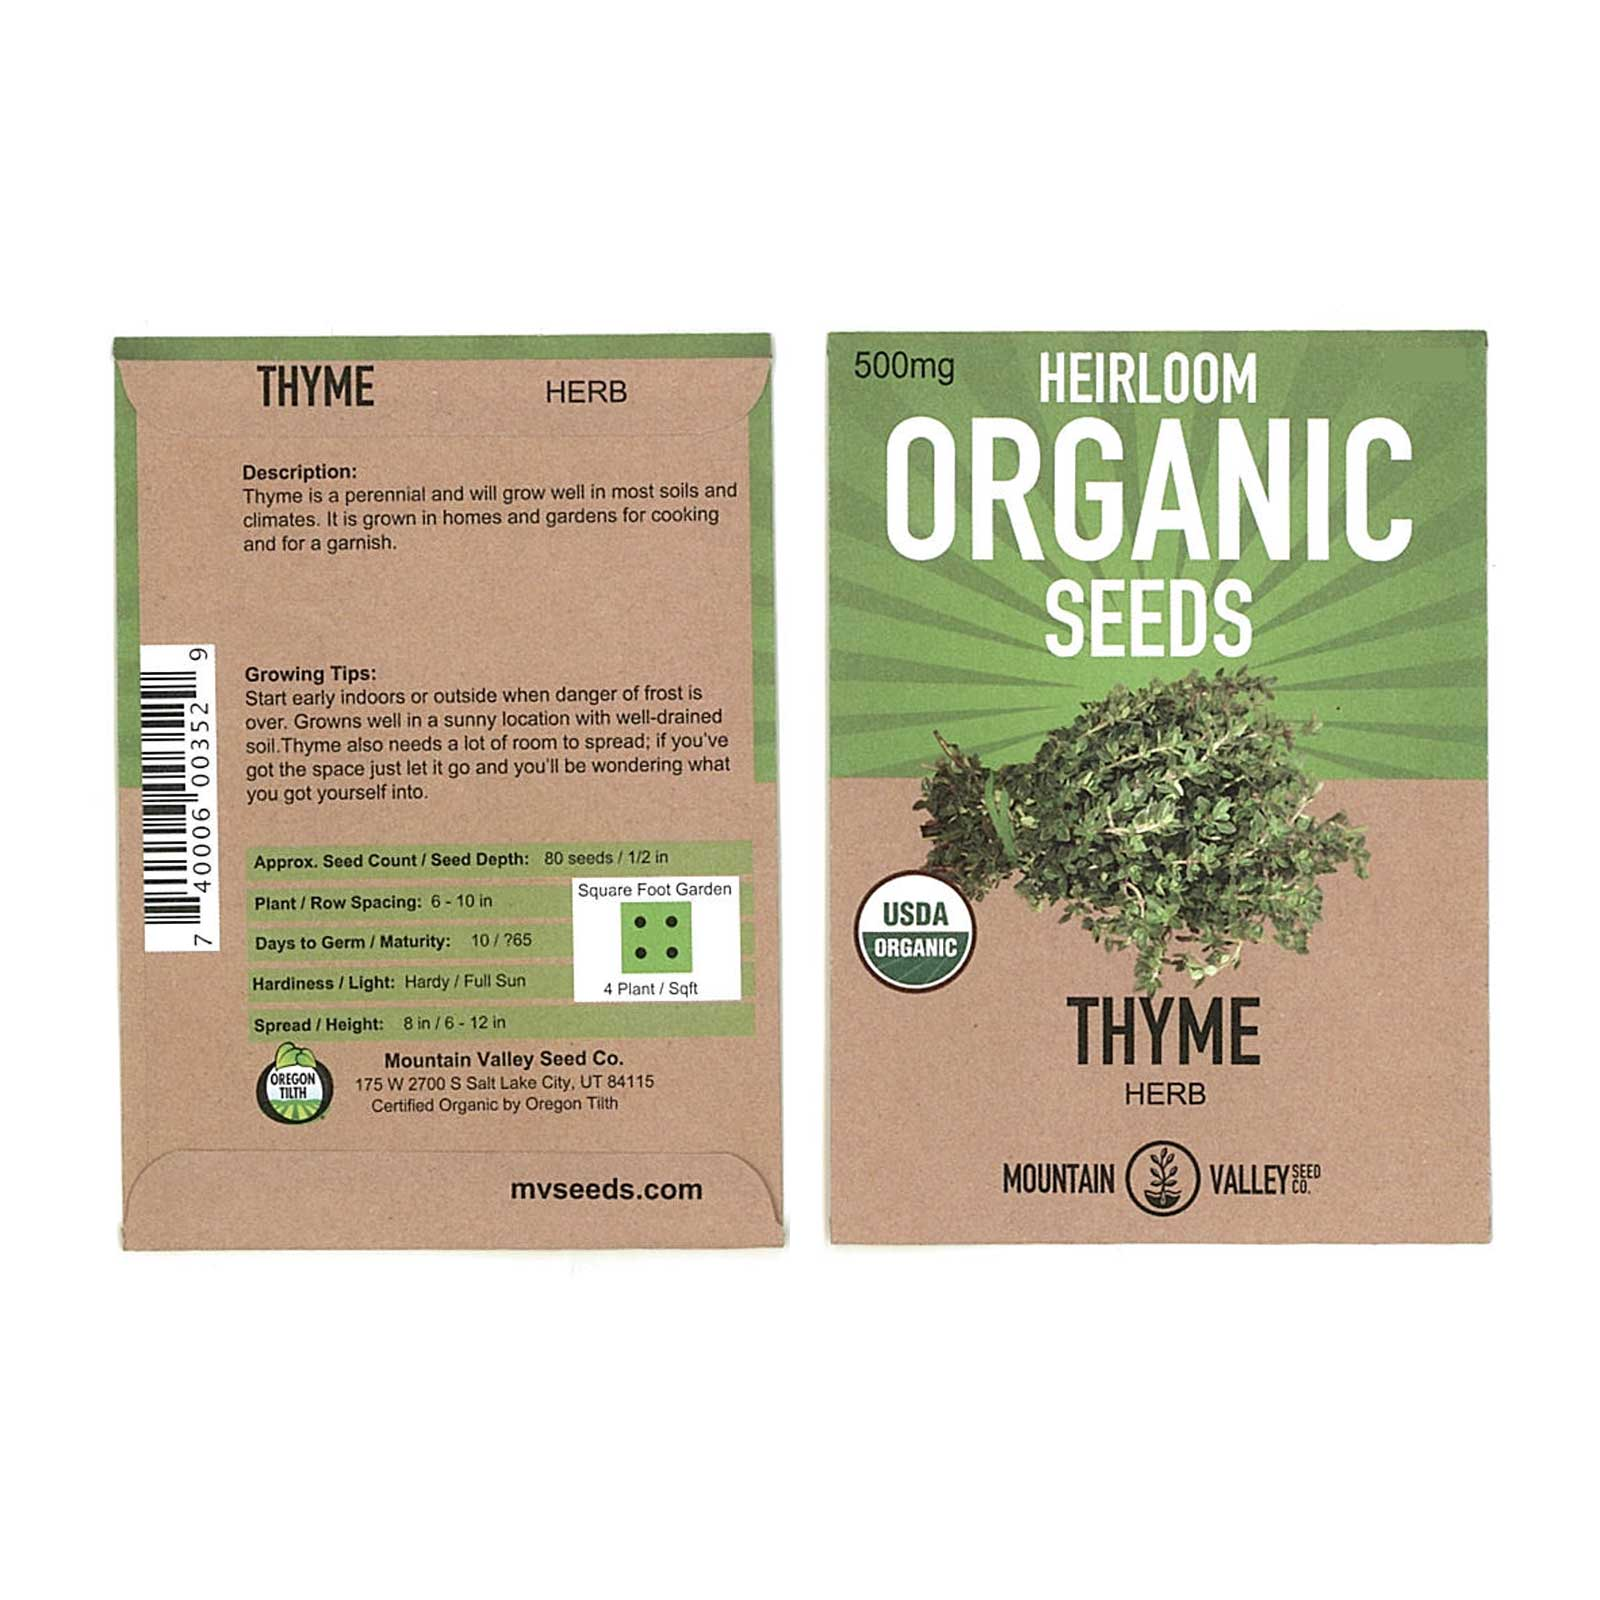 Thyme Herb Garden Seeds - Common - 500 mg Packet - Non-GMO, Organic, Heirloom Herbal Gardening & Microgreens Seeds